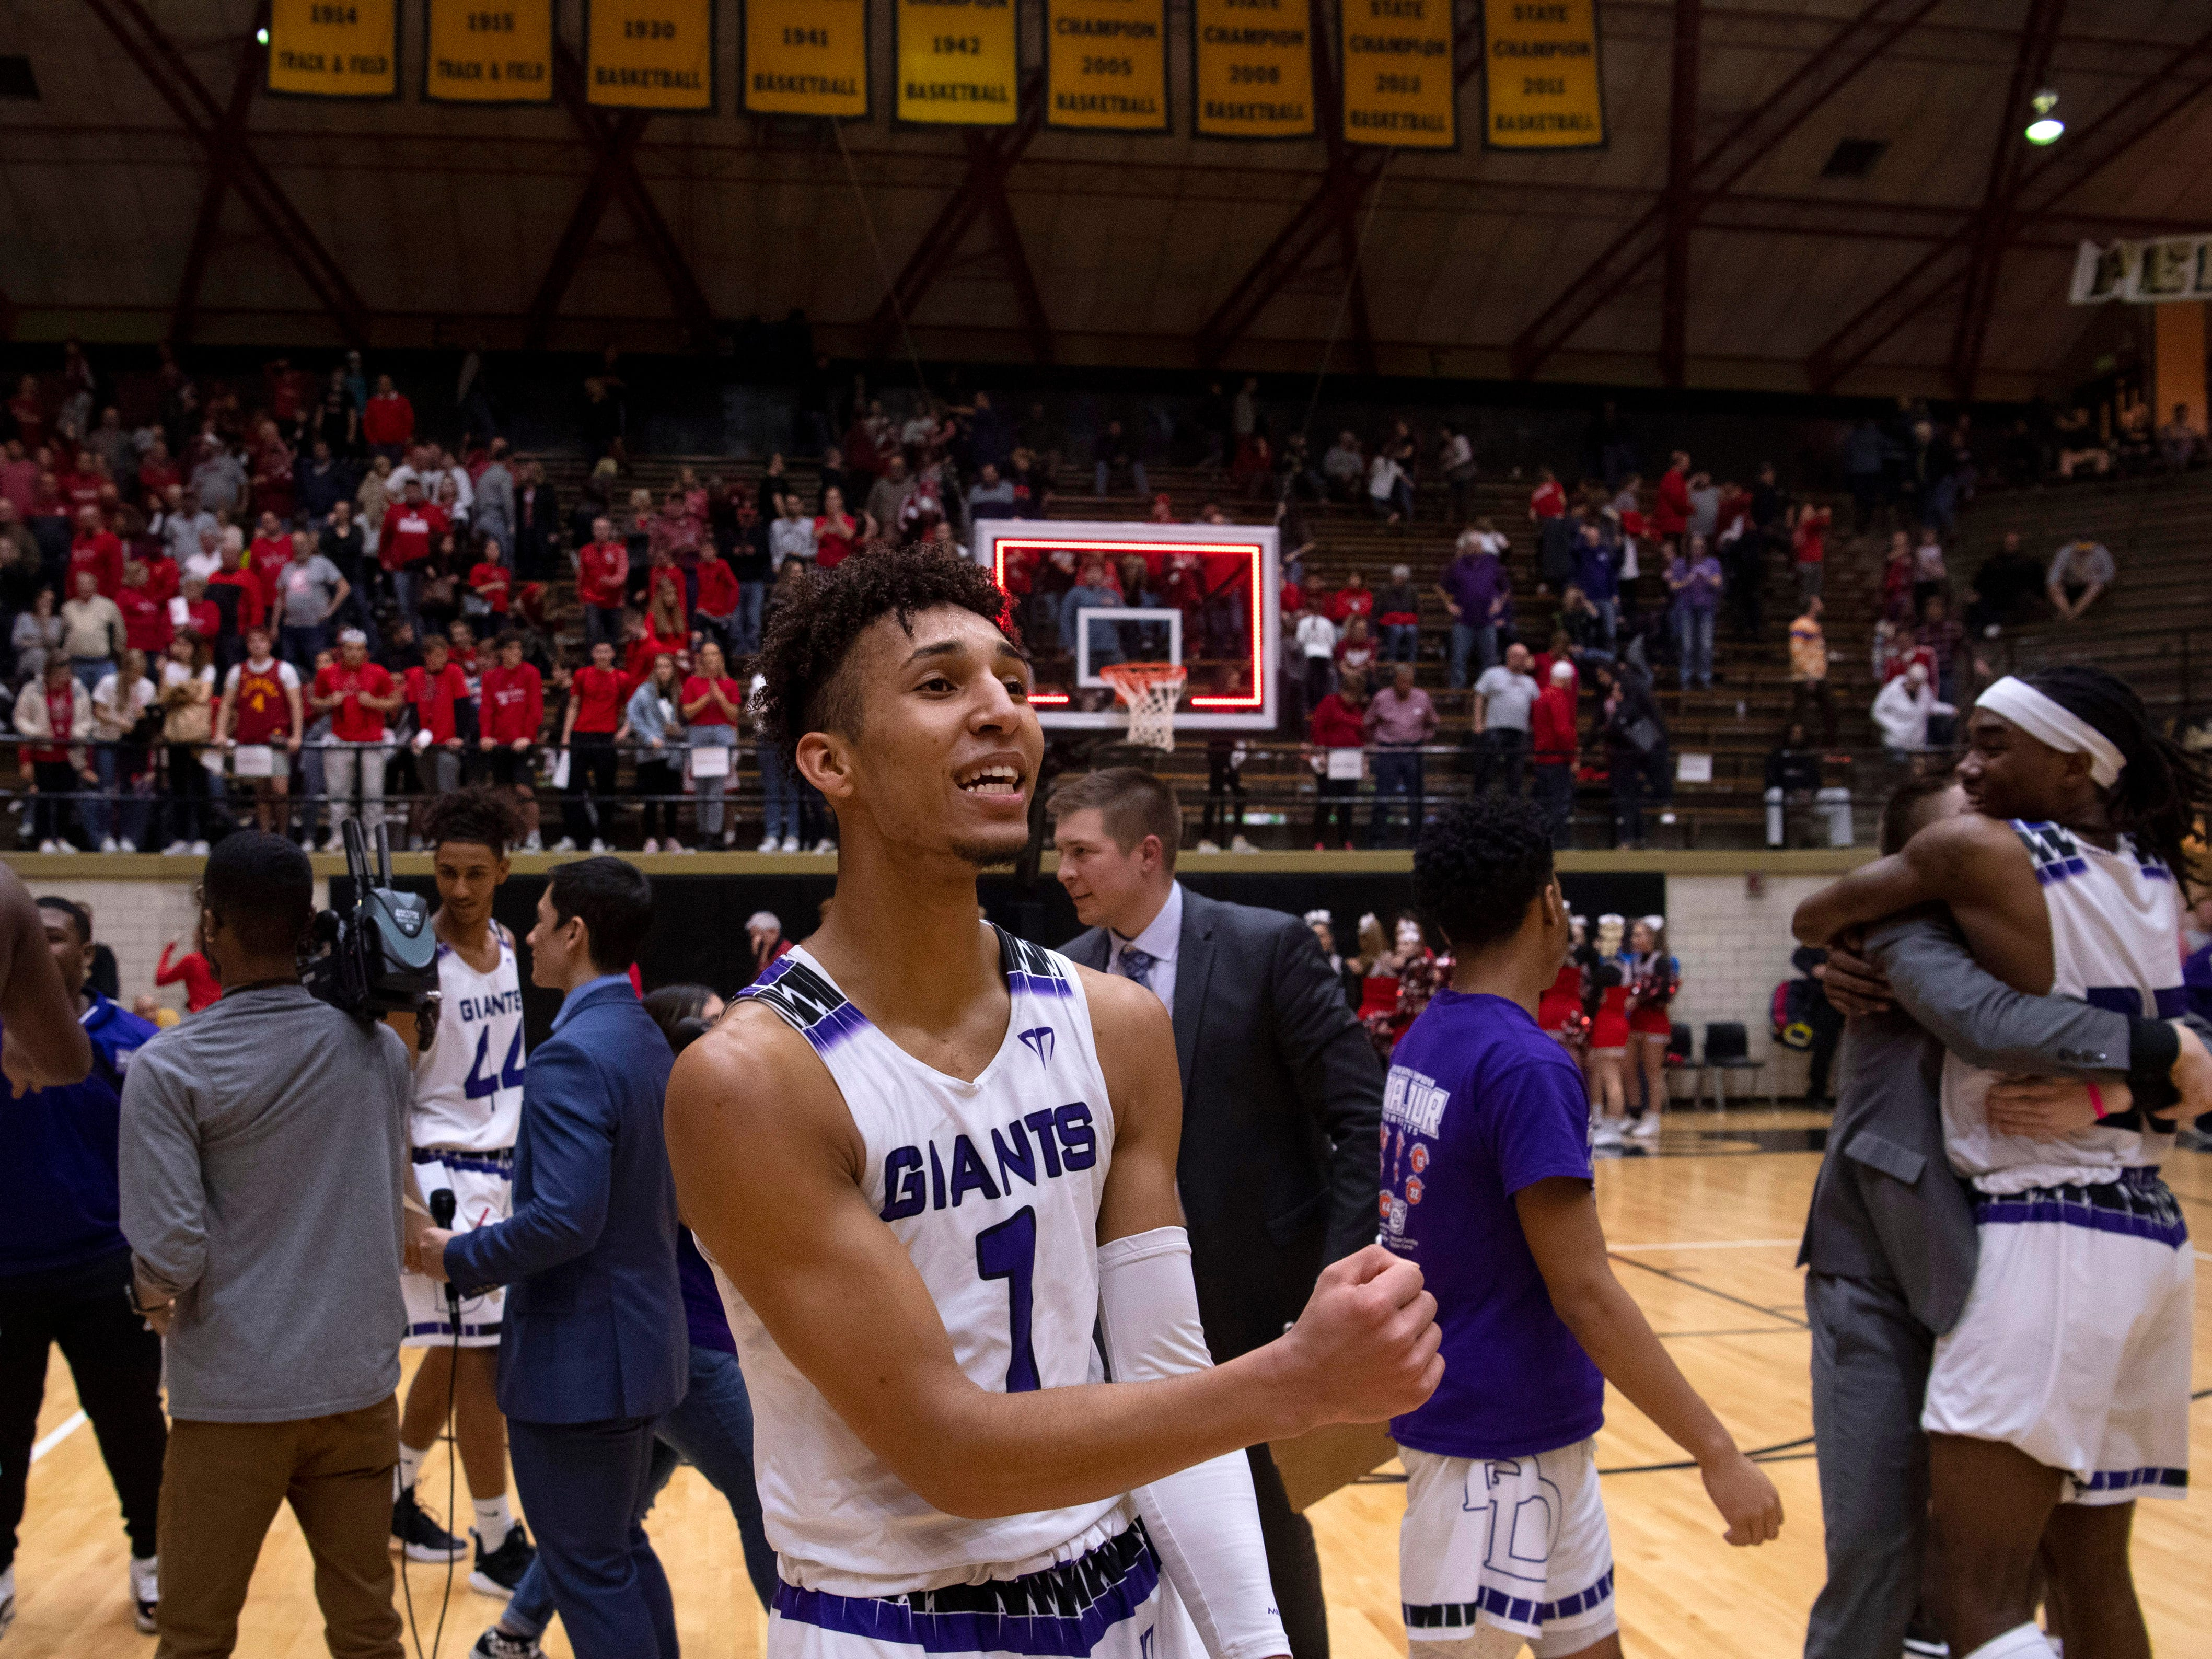 Ben Davis's Tyreese Nibbs (1) celebrates moments after beating Center Grove and advancing to state at the 4A Boys Indiana Semi-State Basketball Tournament at the Hatchet House in Washington, Ind., Saturday afternoon.